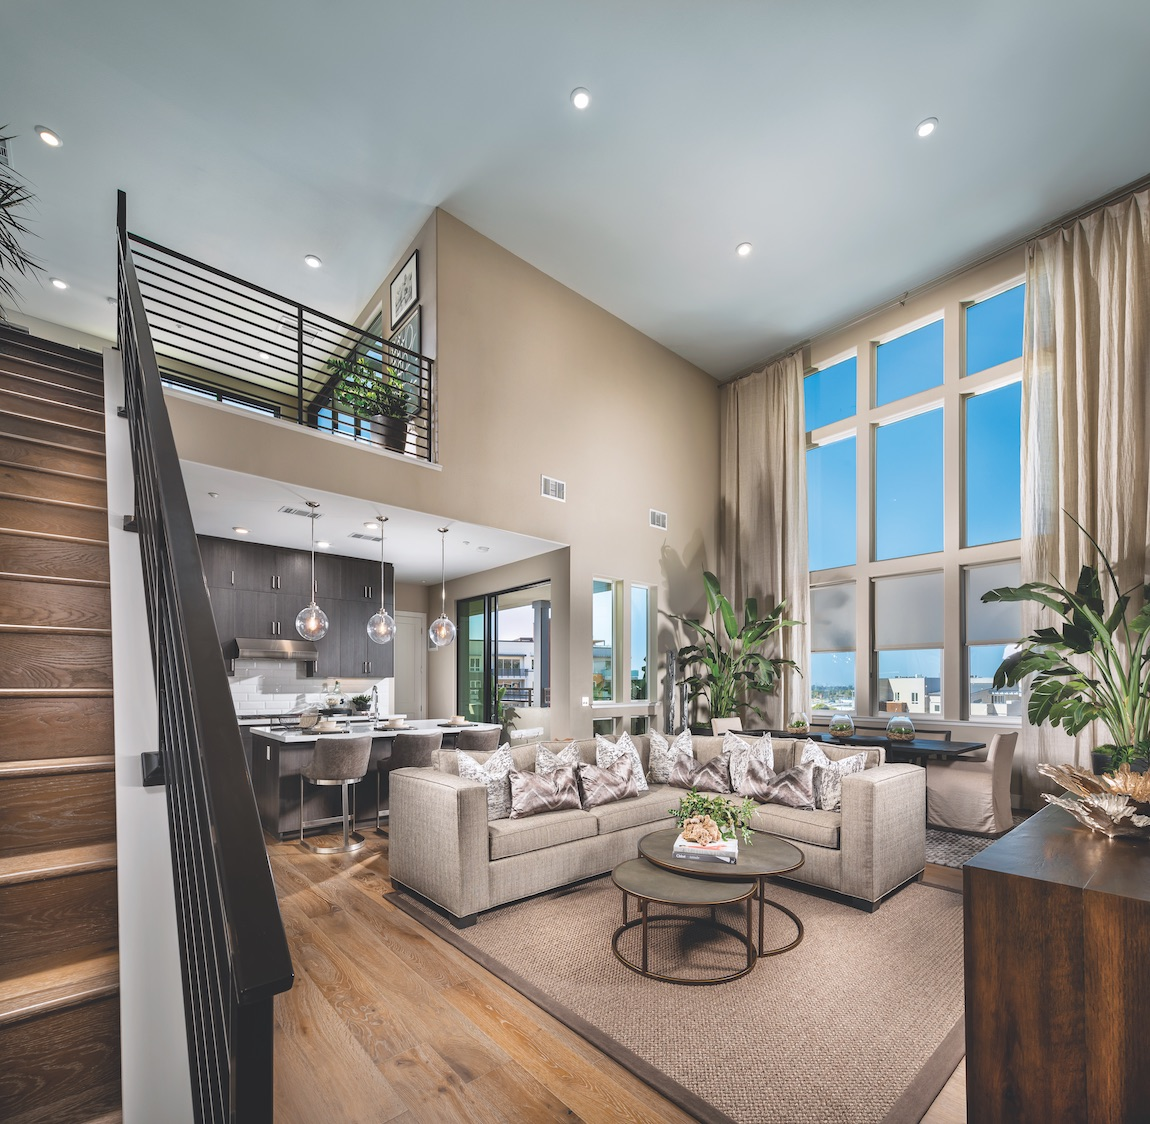 Interior of Metro Crossing home design with floor to ceiling windows, natural light, high hats and tan painted walls.